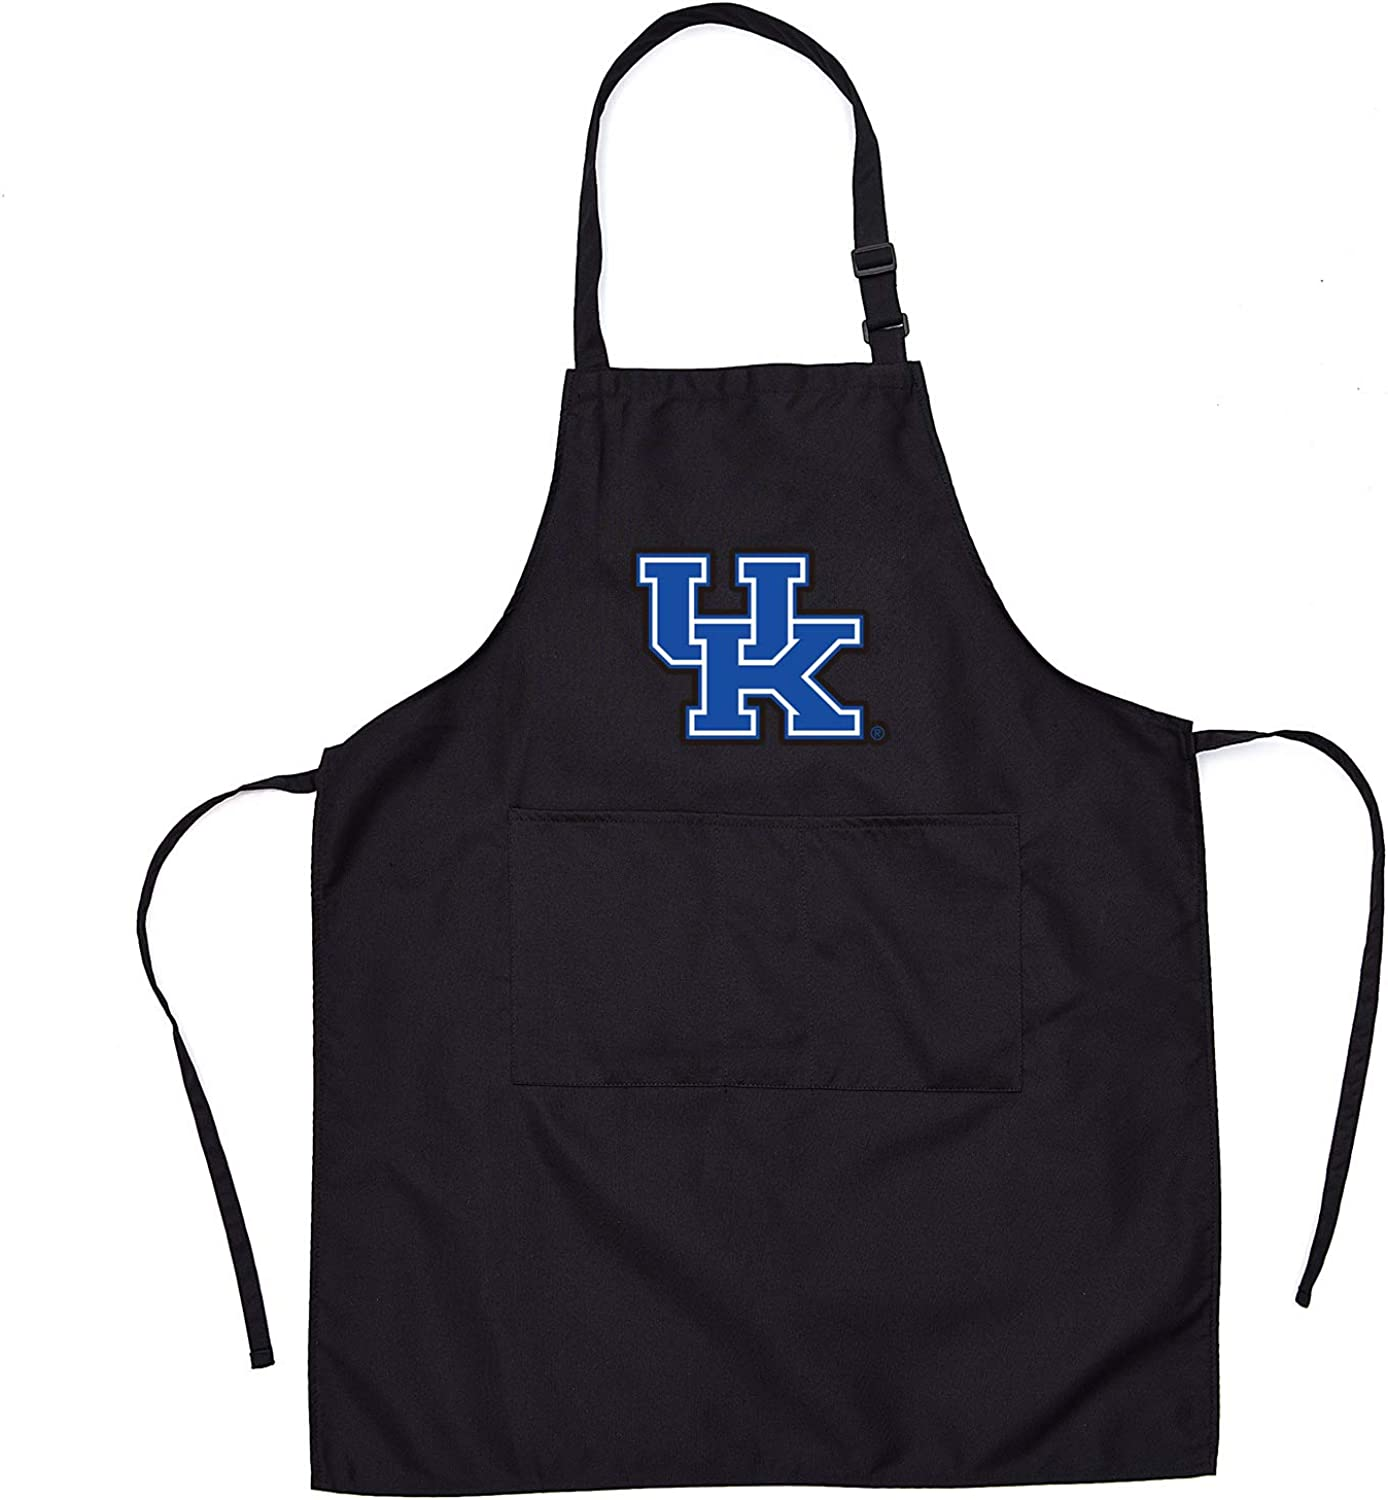 holly joll Apron Chef Football Teams Fans for BBQ Barbeque Cook Grill Home Tailgating Picnic